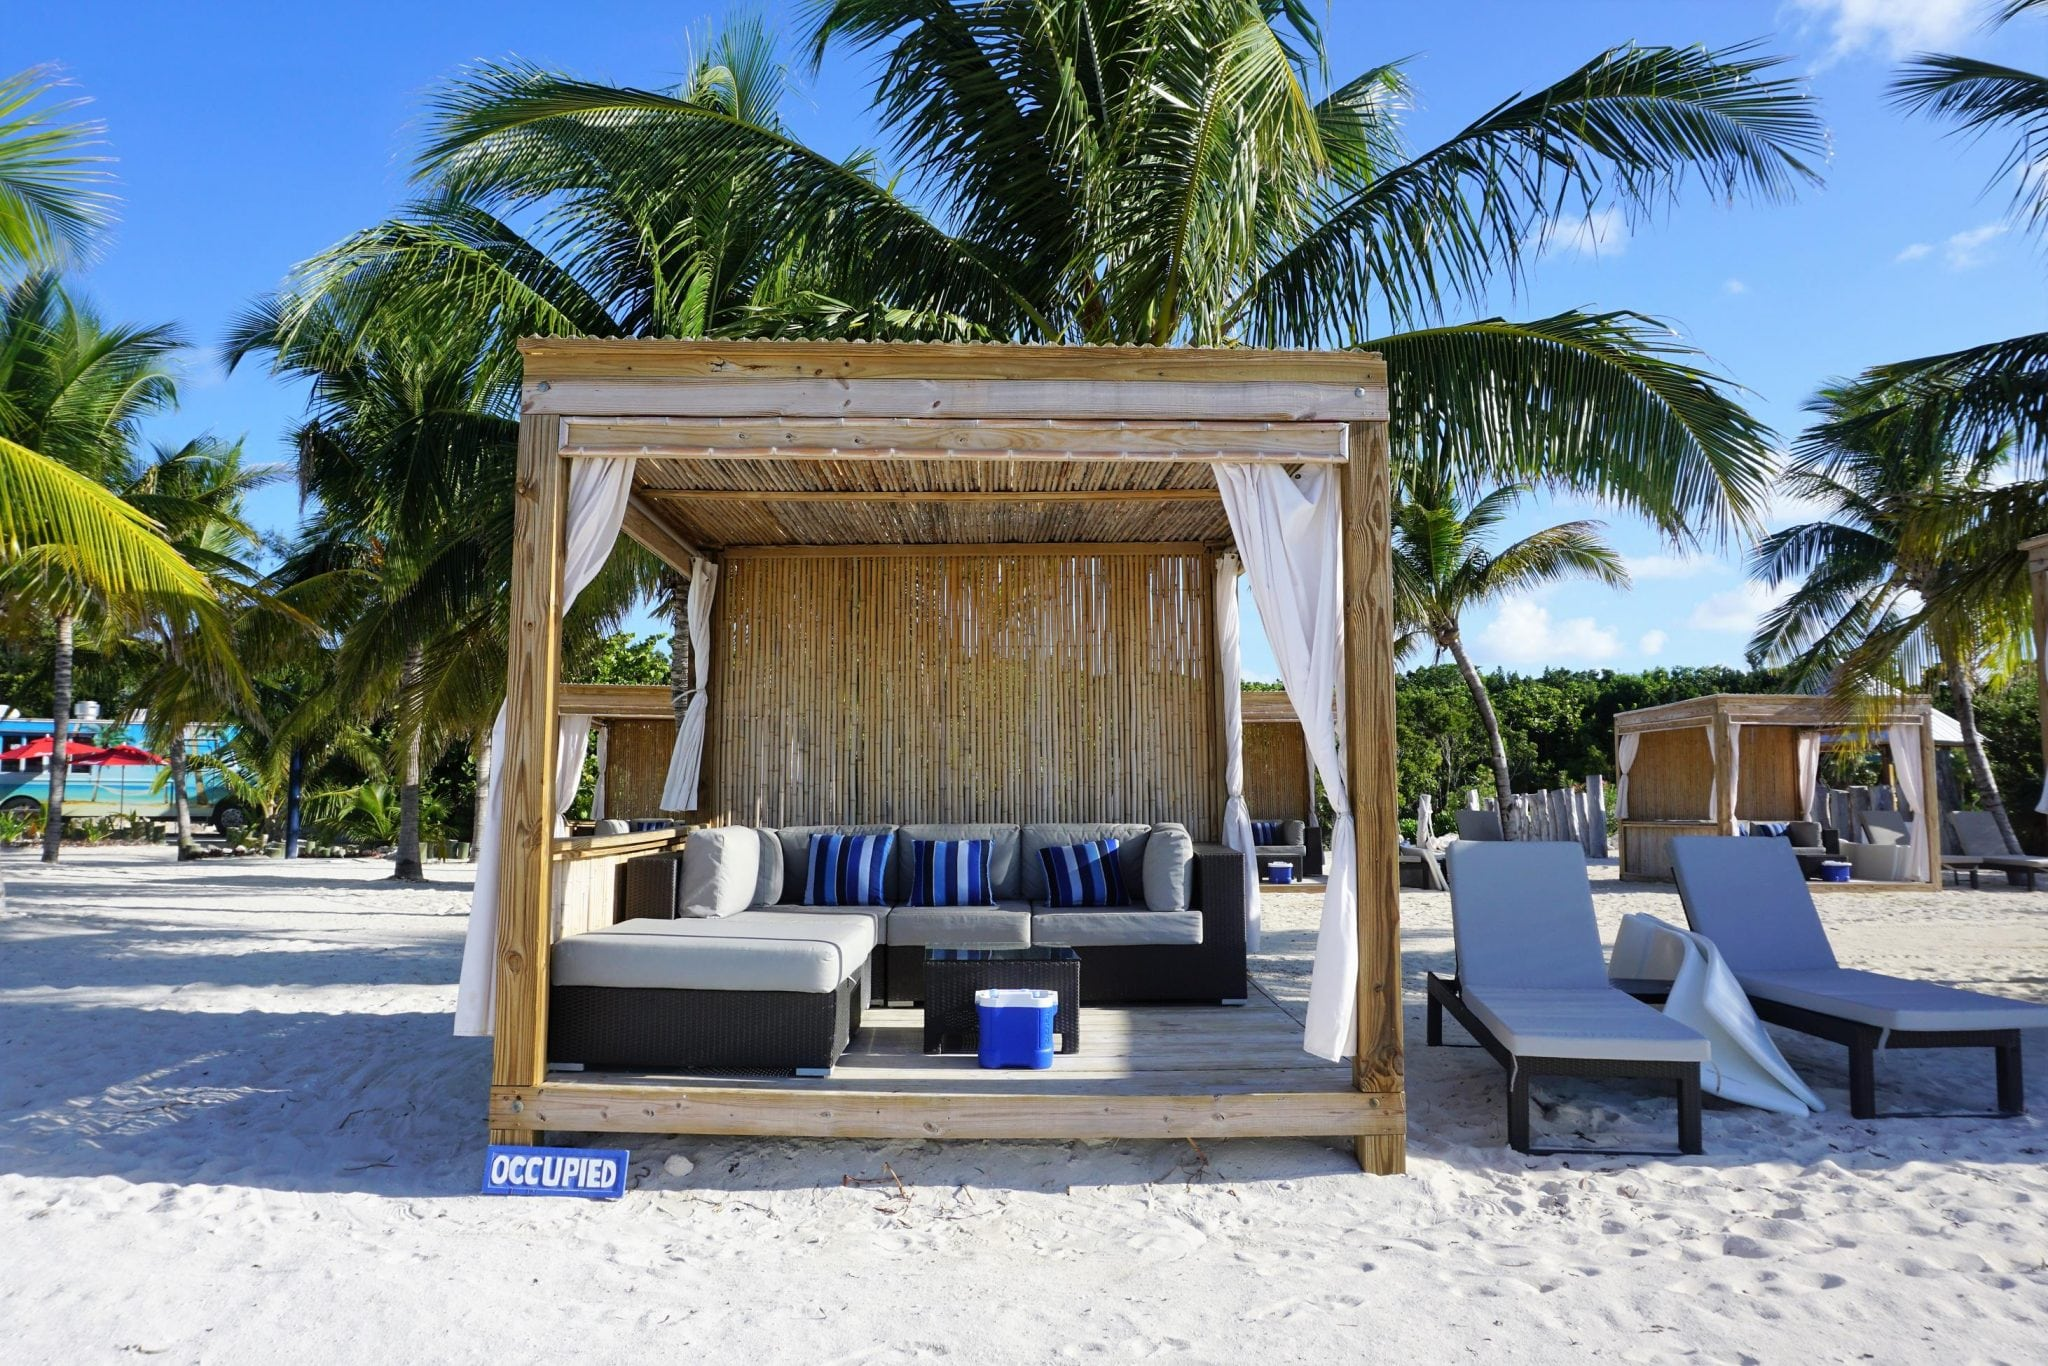 New Bungalows on CocoCay